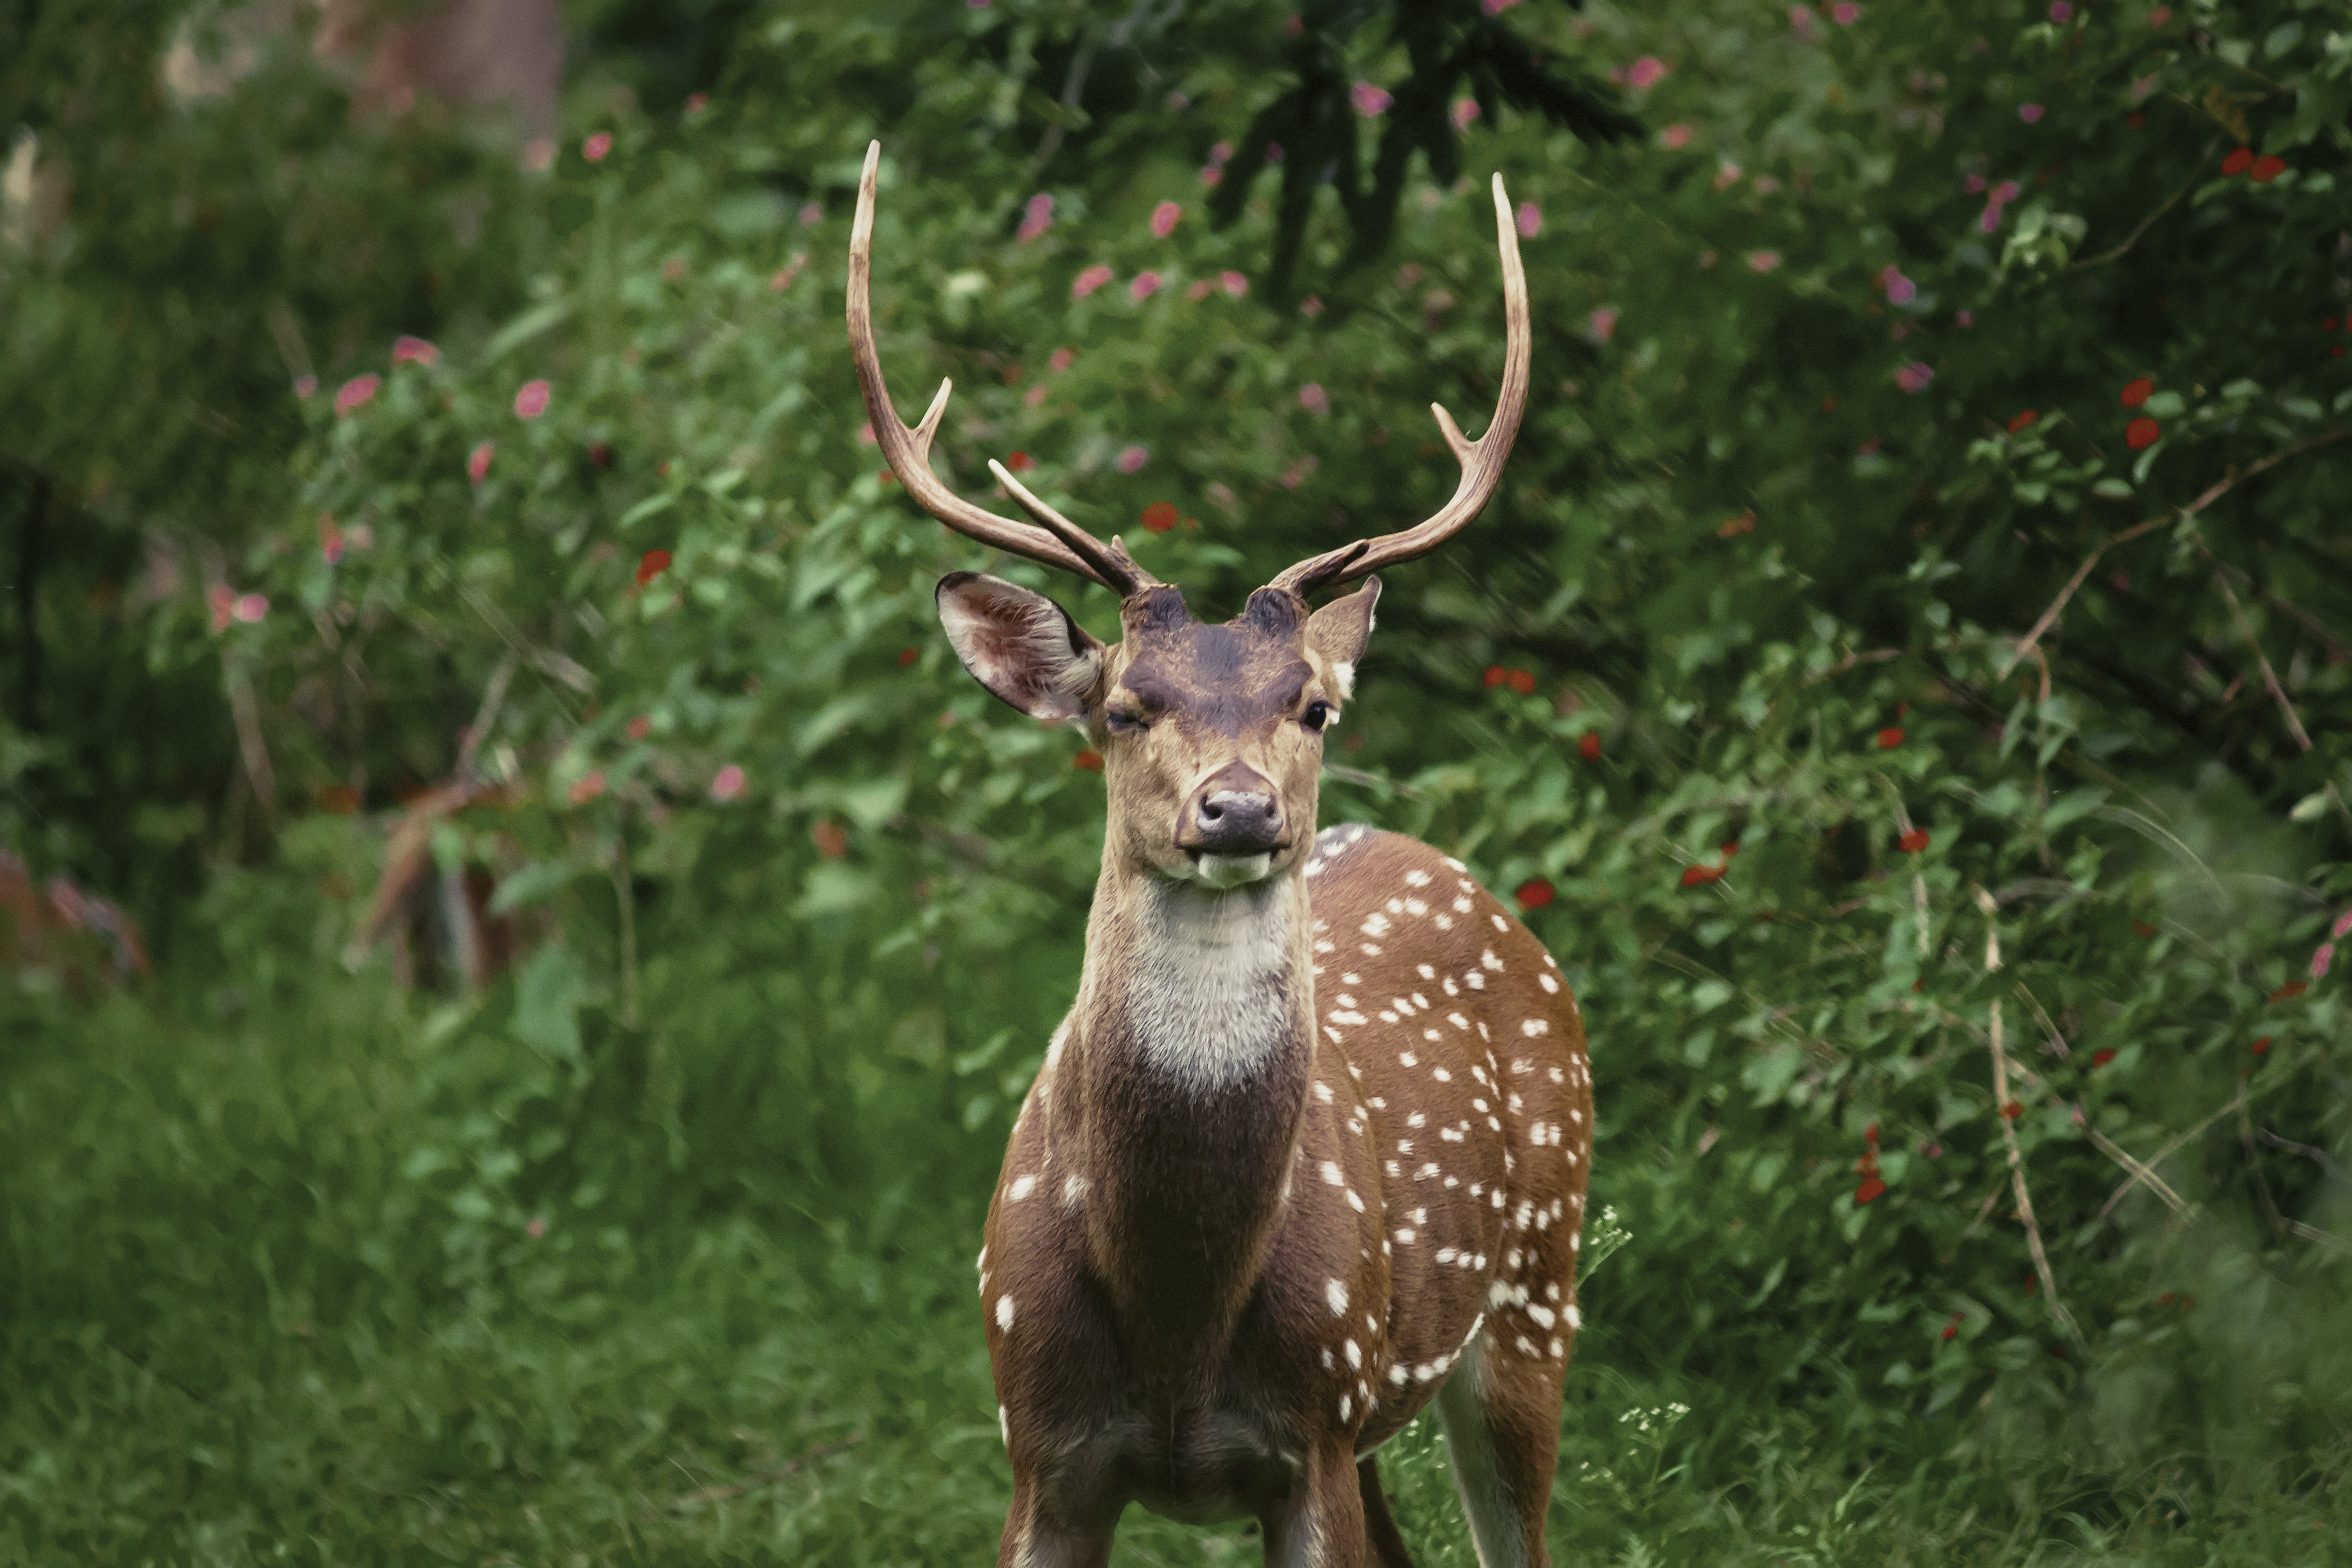 spotted deer standing near green bushes